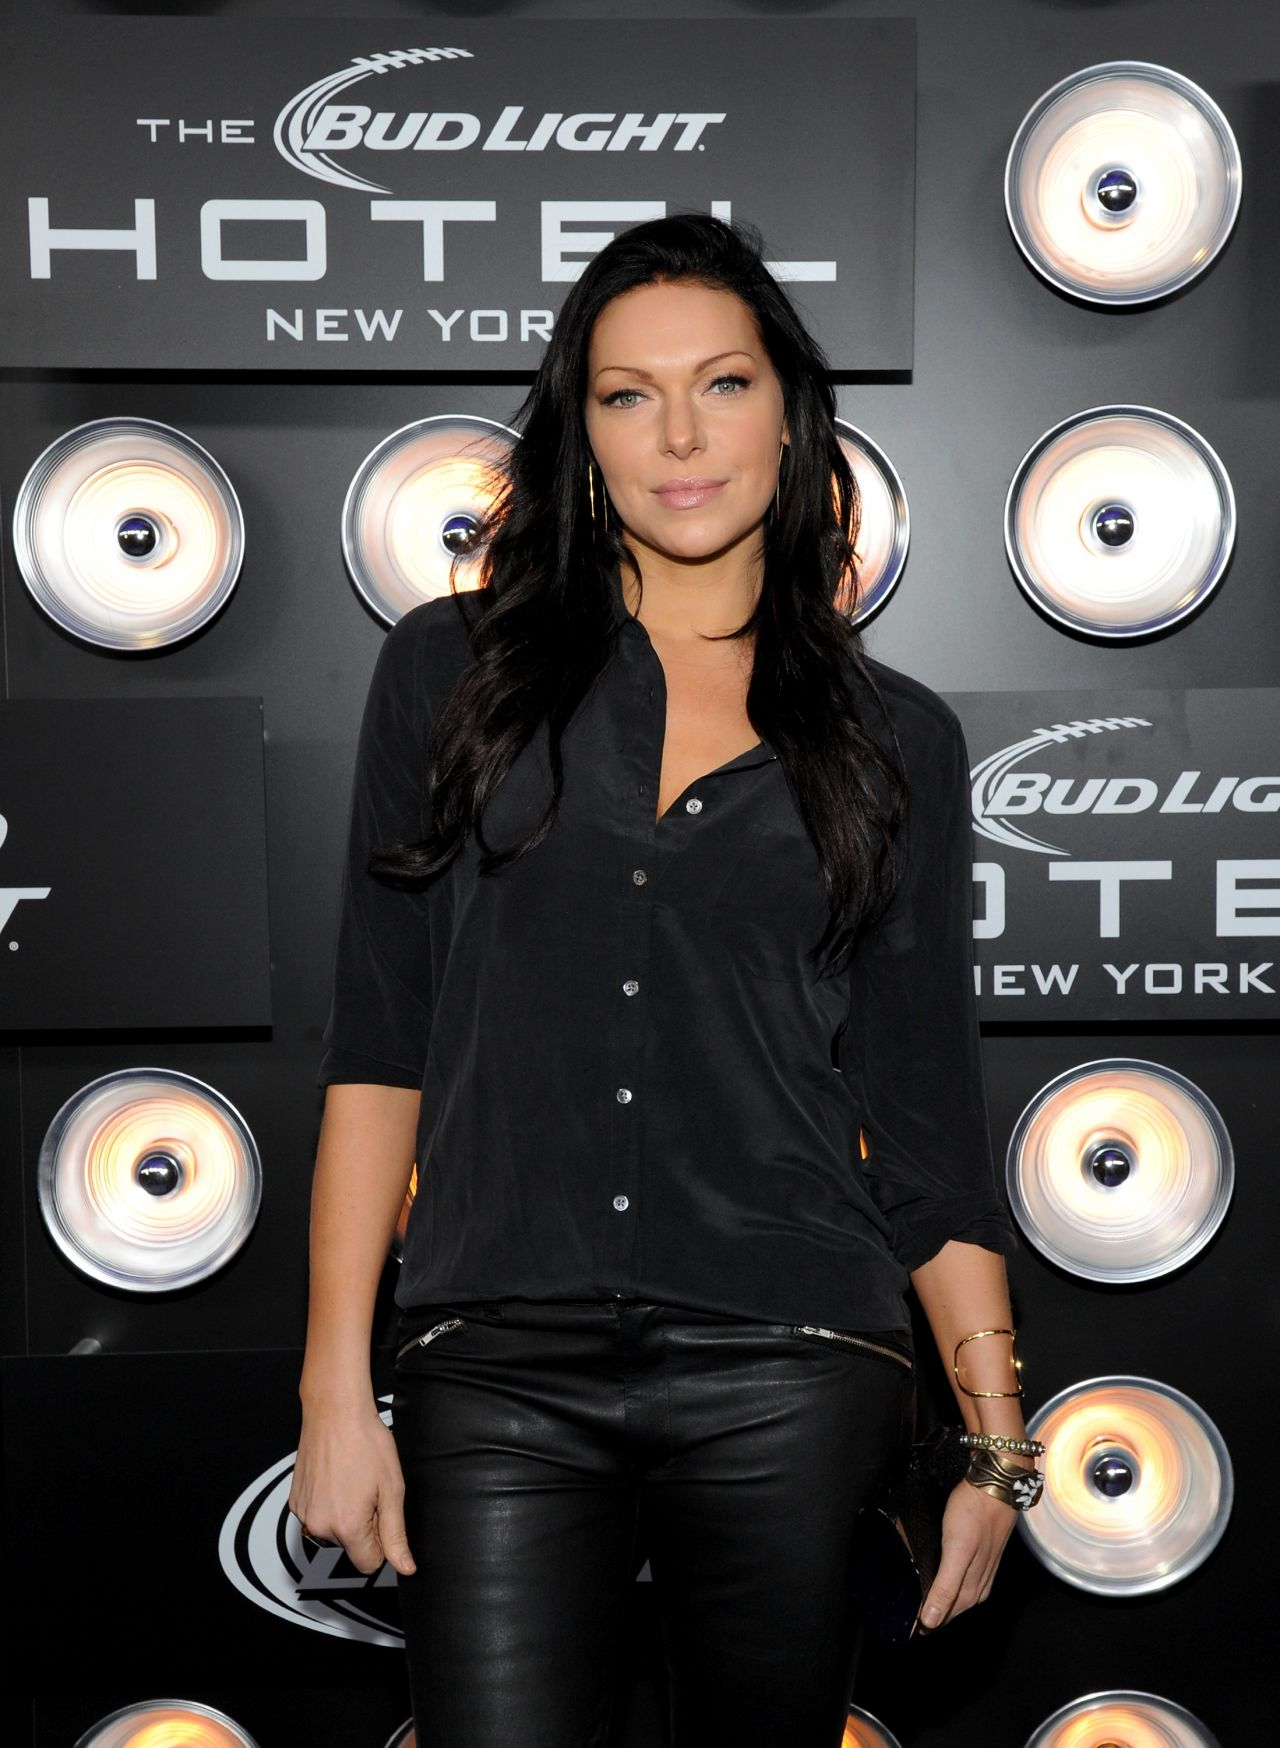 Laura Prepon - 2014 Bud Light Hotel Event in New York City